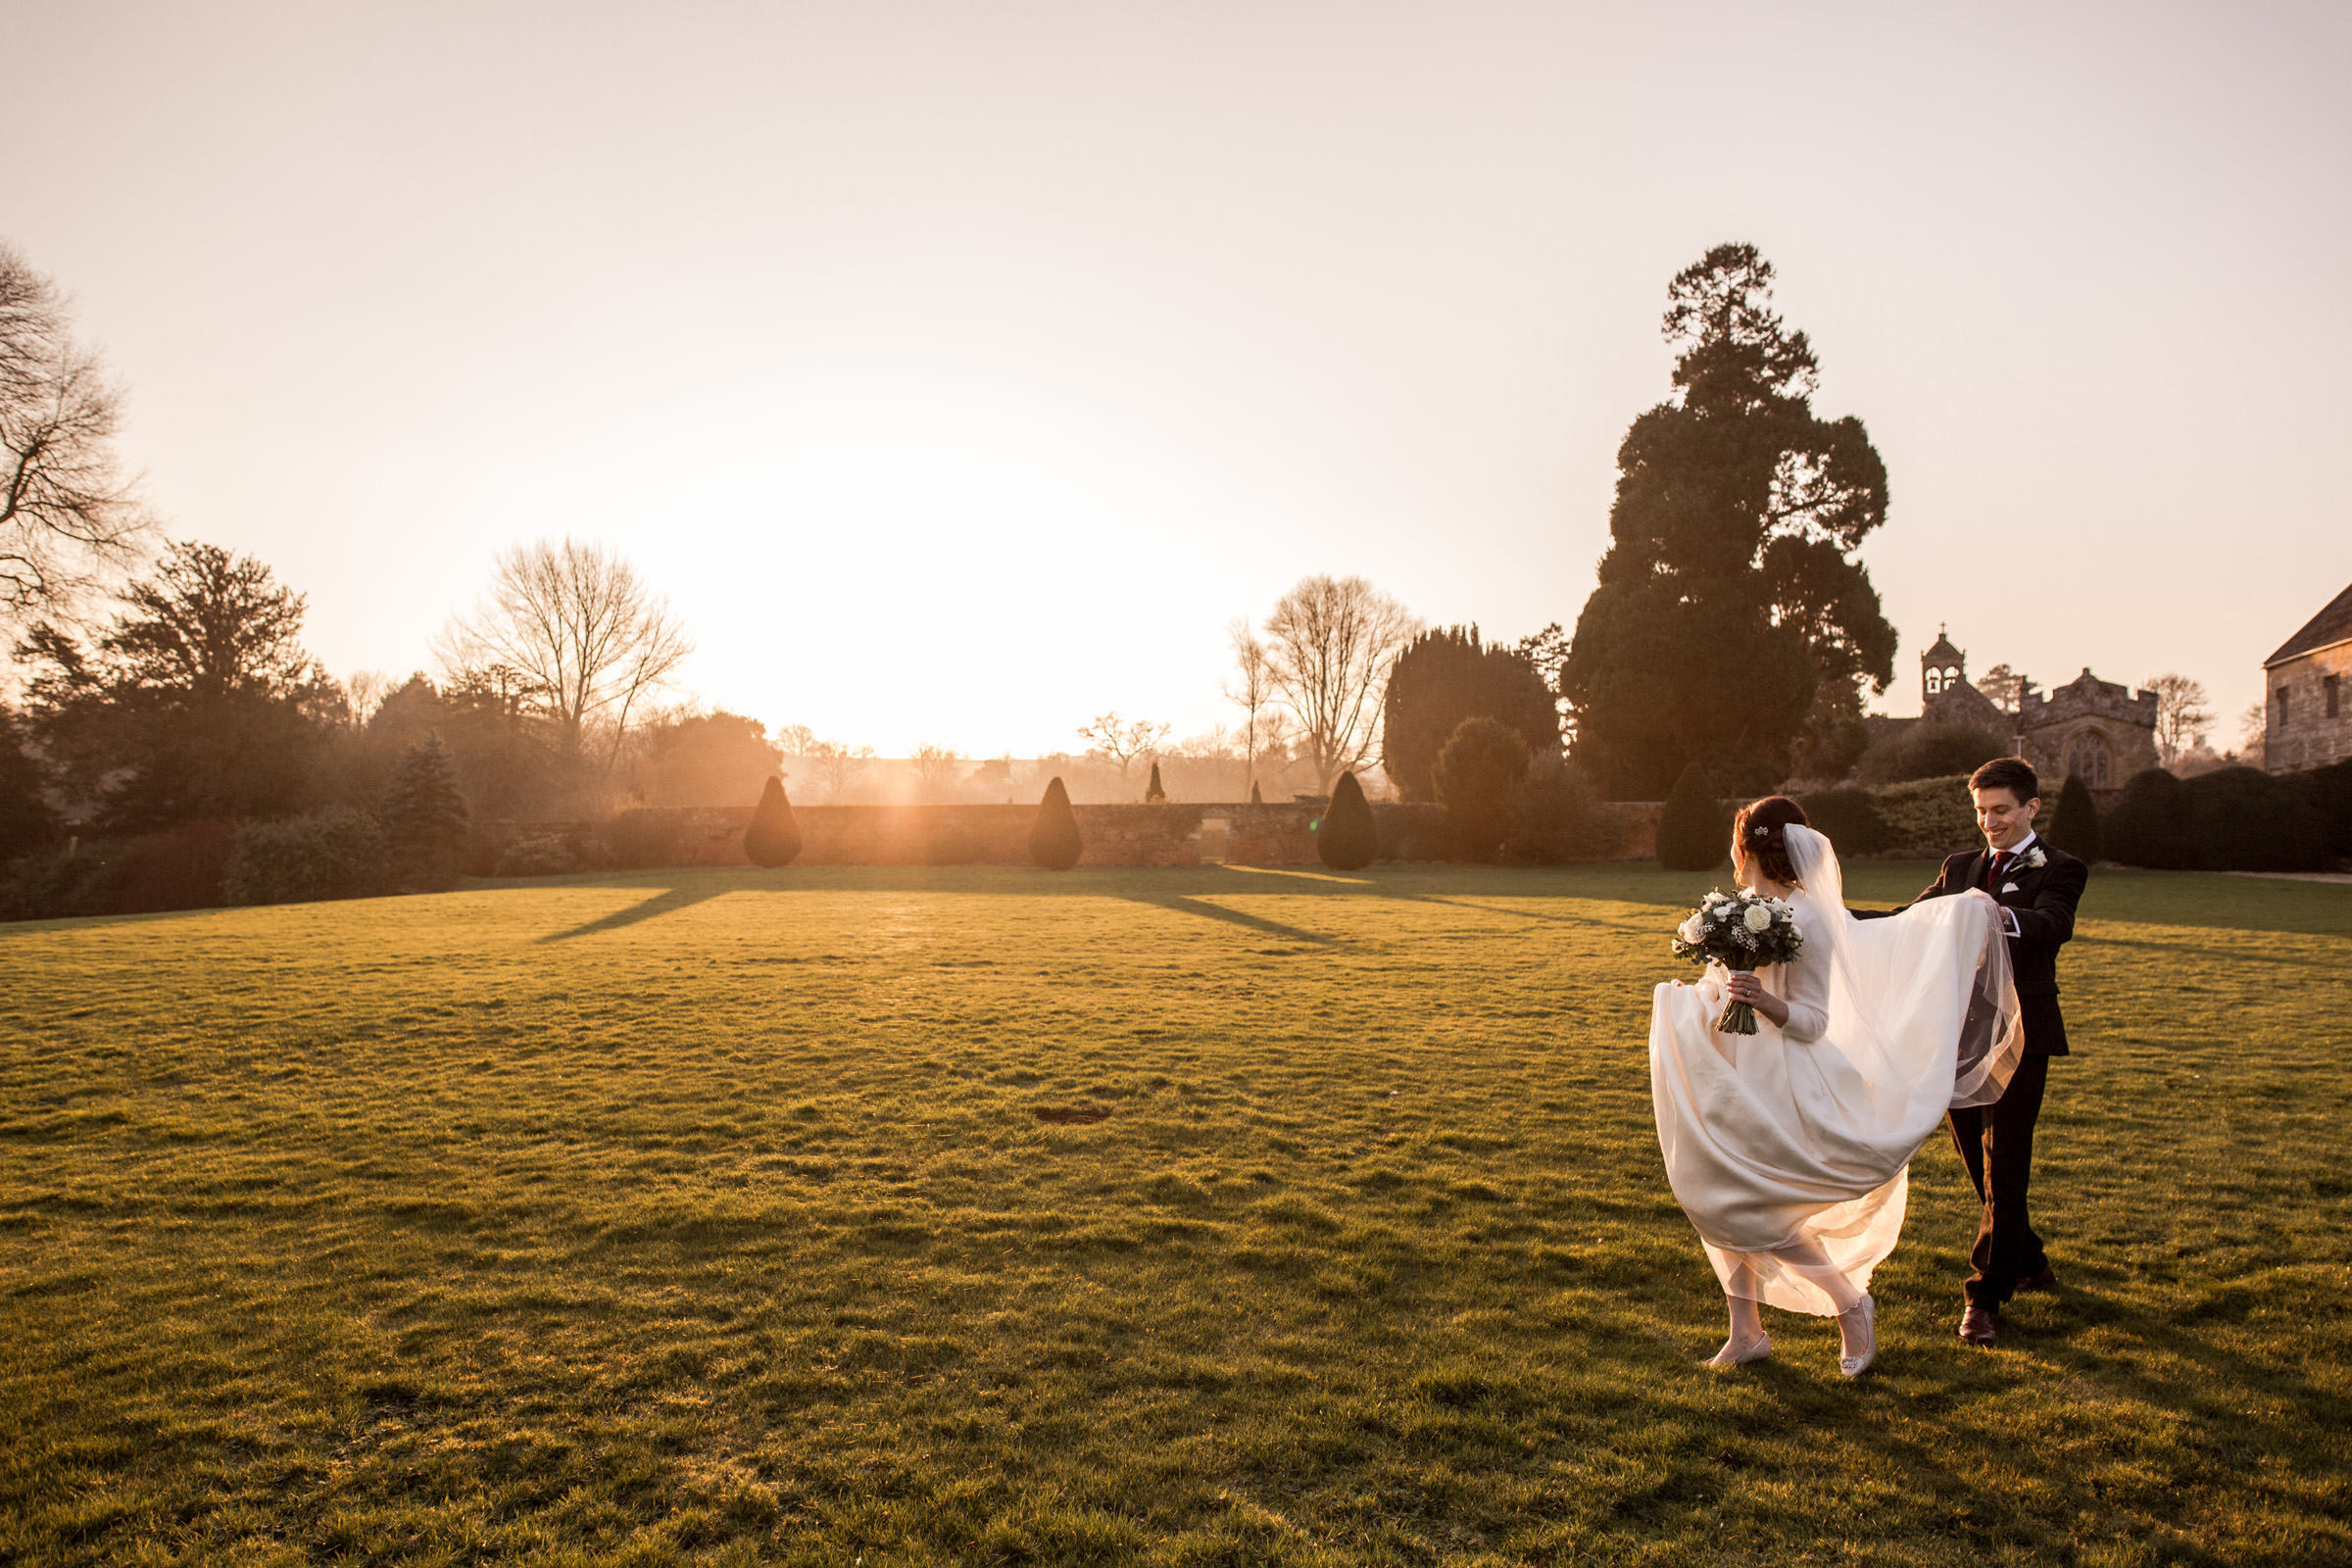 relaxed wedding photography at in somerset 023.jpg